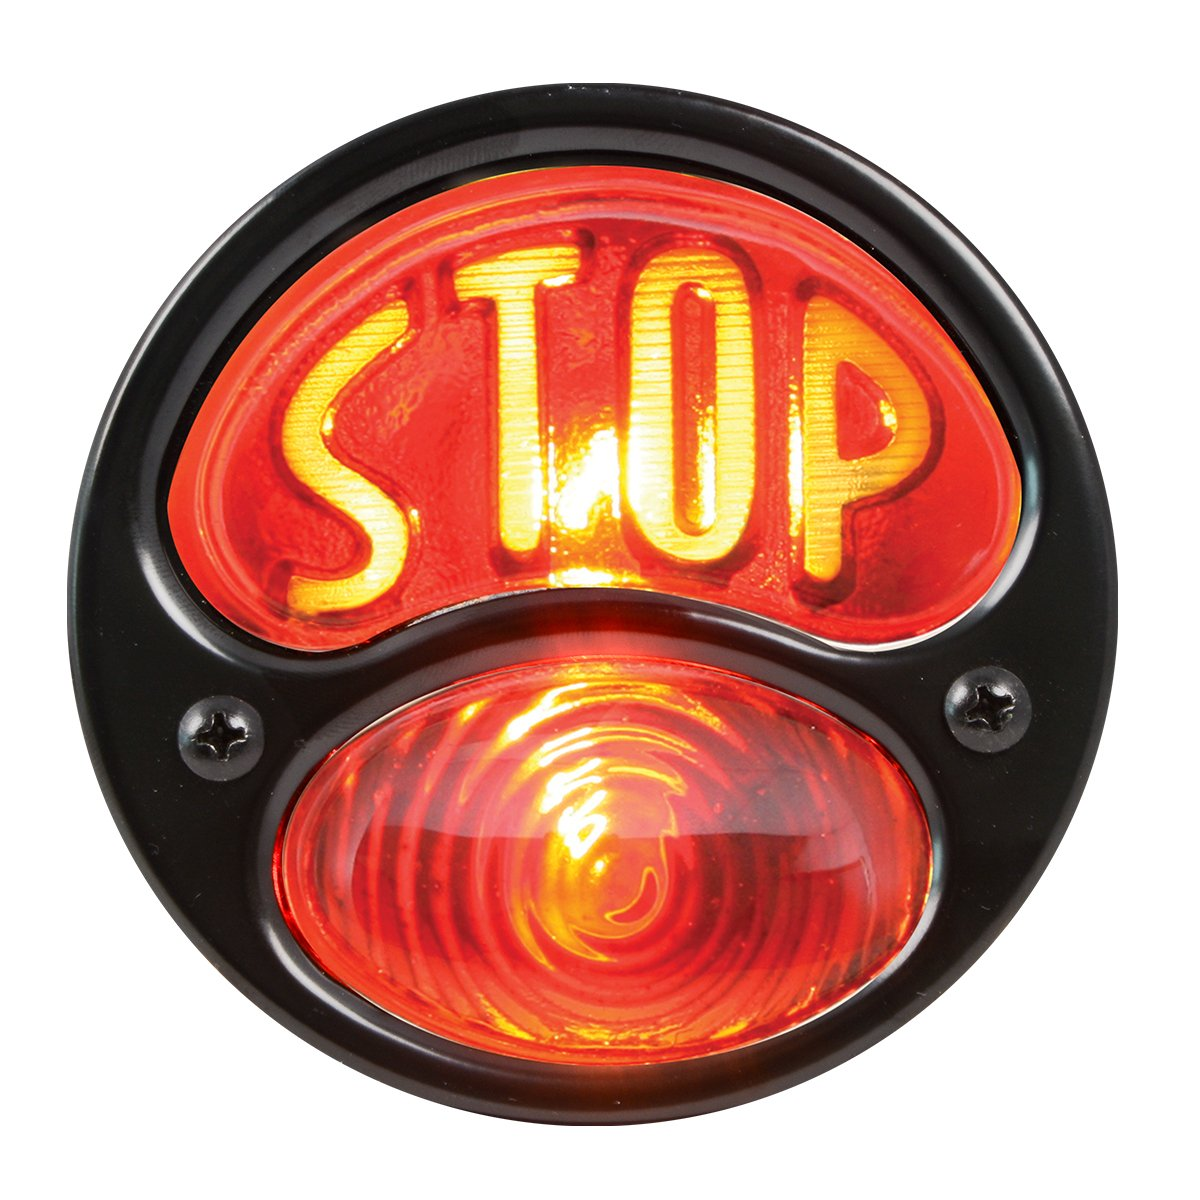 KNS Accessories KA0021 Black 12V Duolamp Tail Light for Ford Model A with Amber ''STOP'' Script on Red Glass Lens and License Light